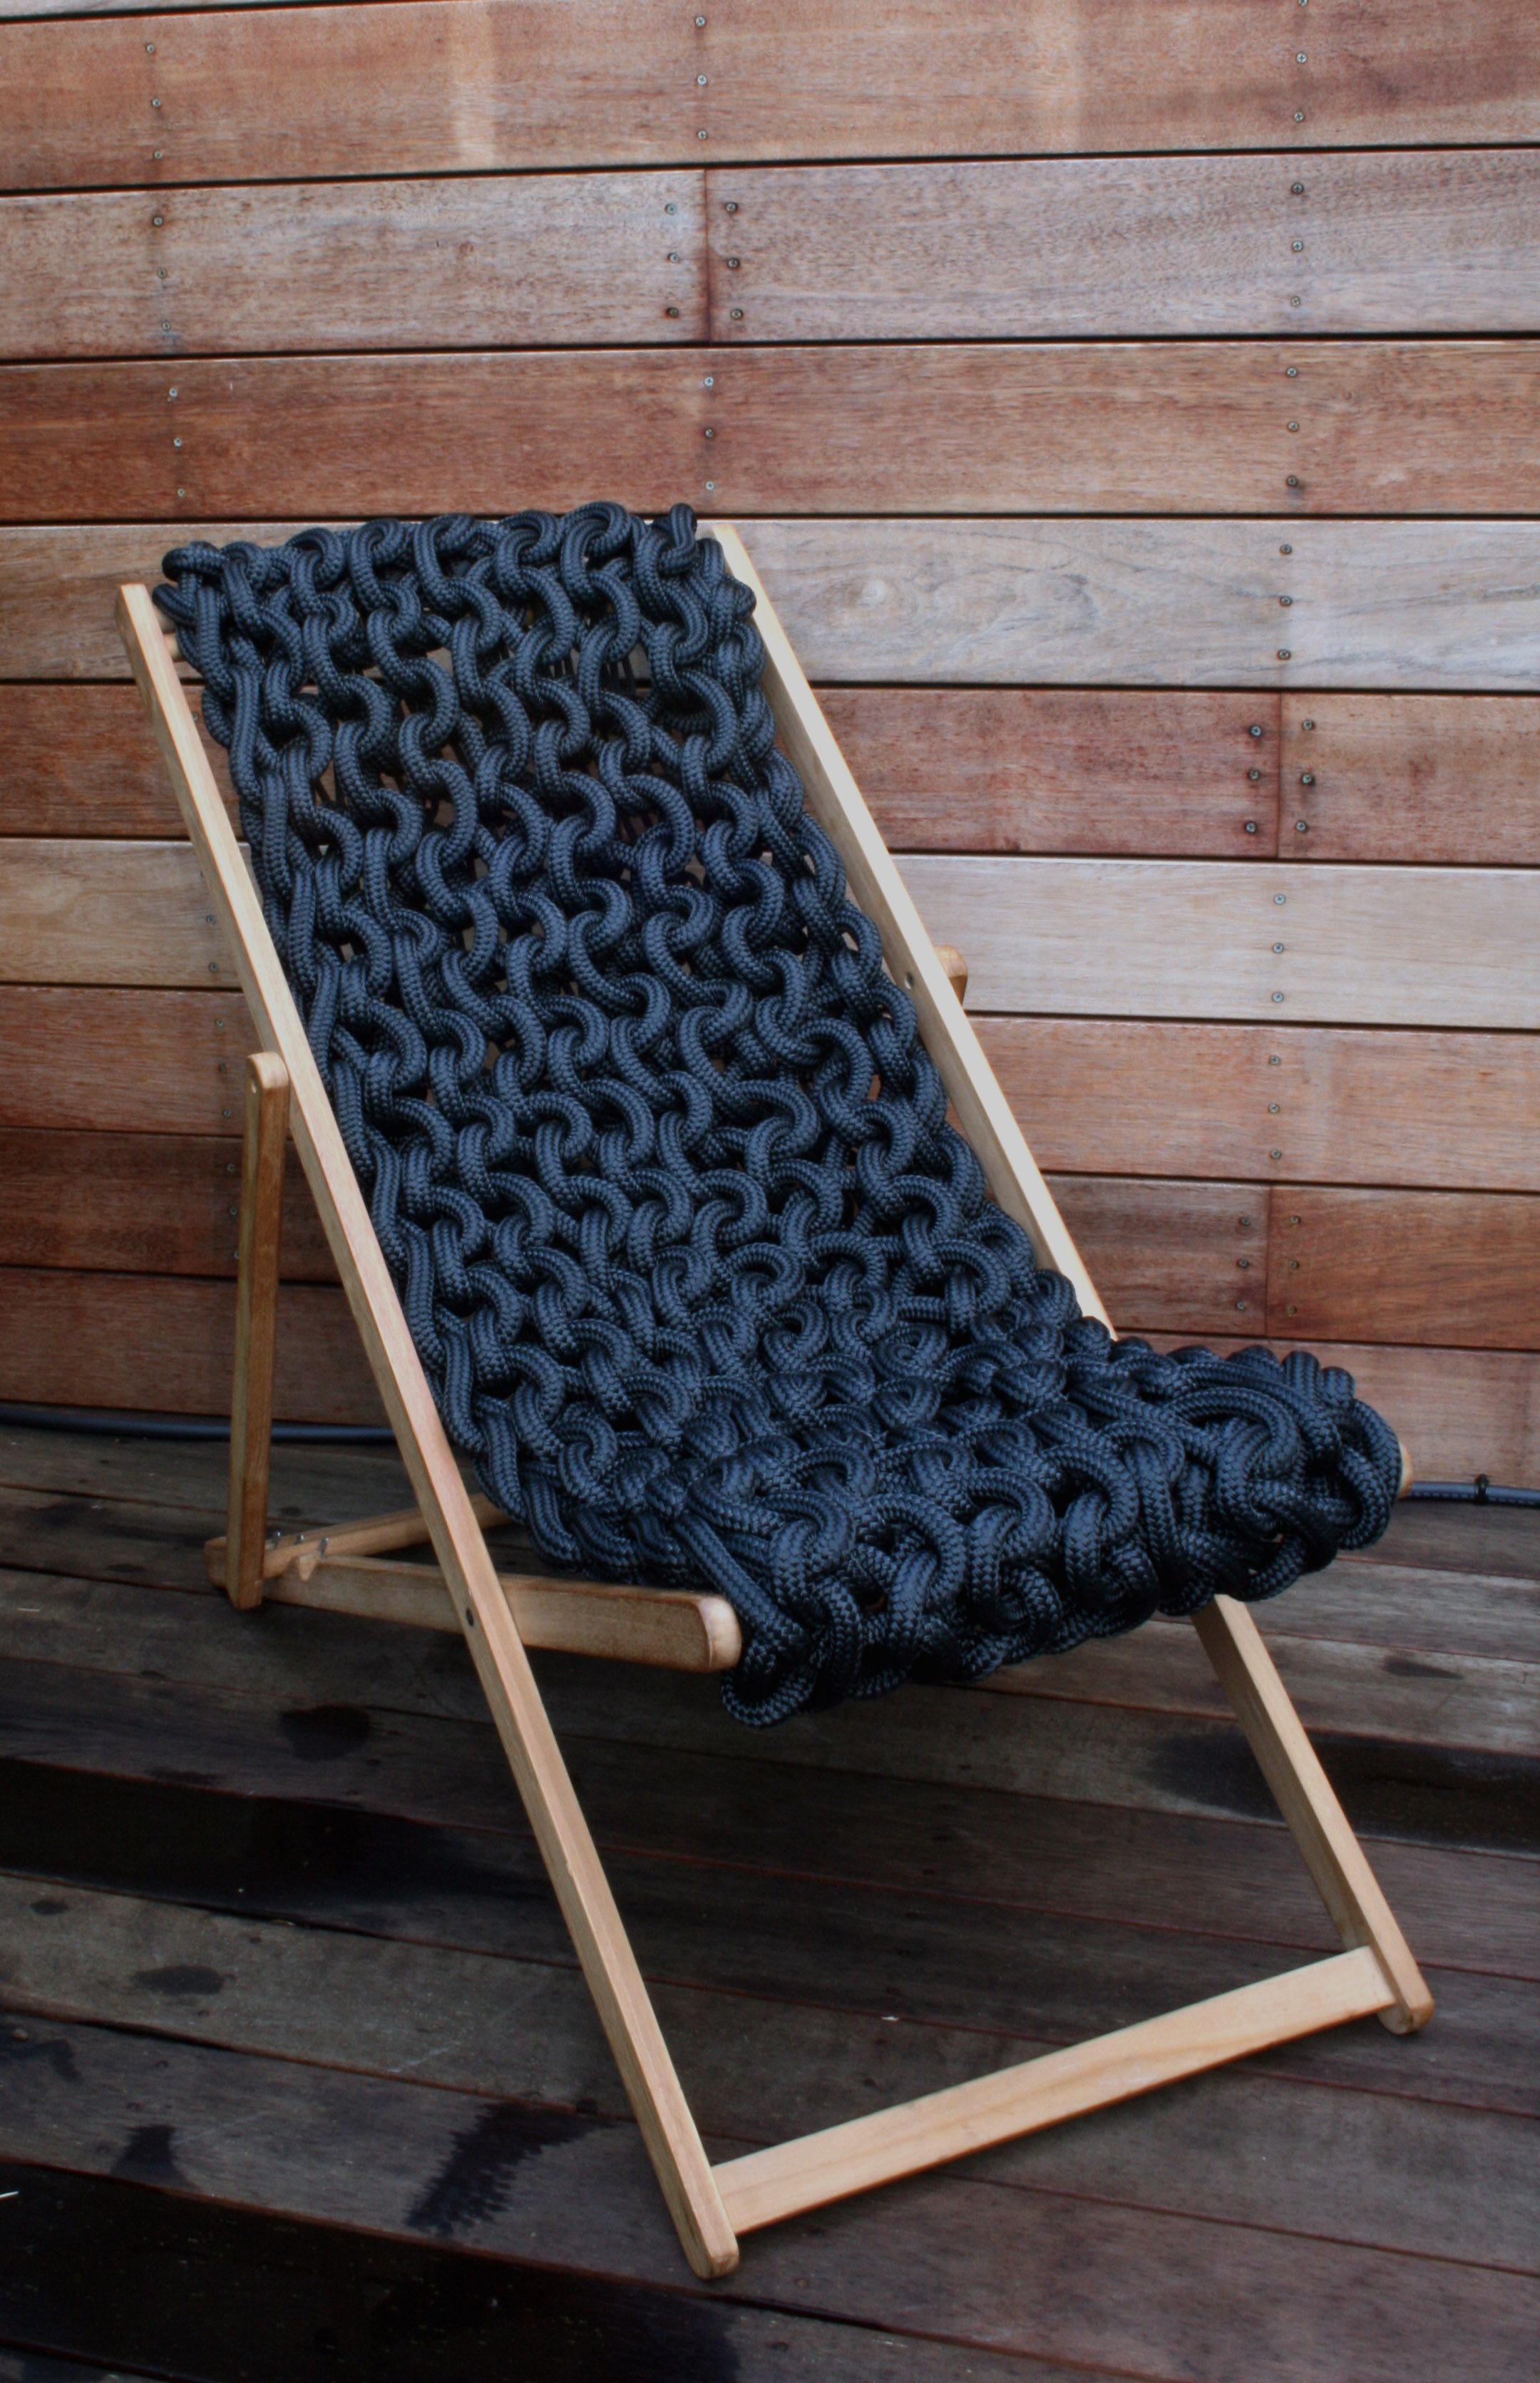 thread architecture rope deck chair